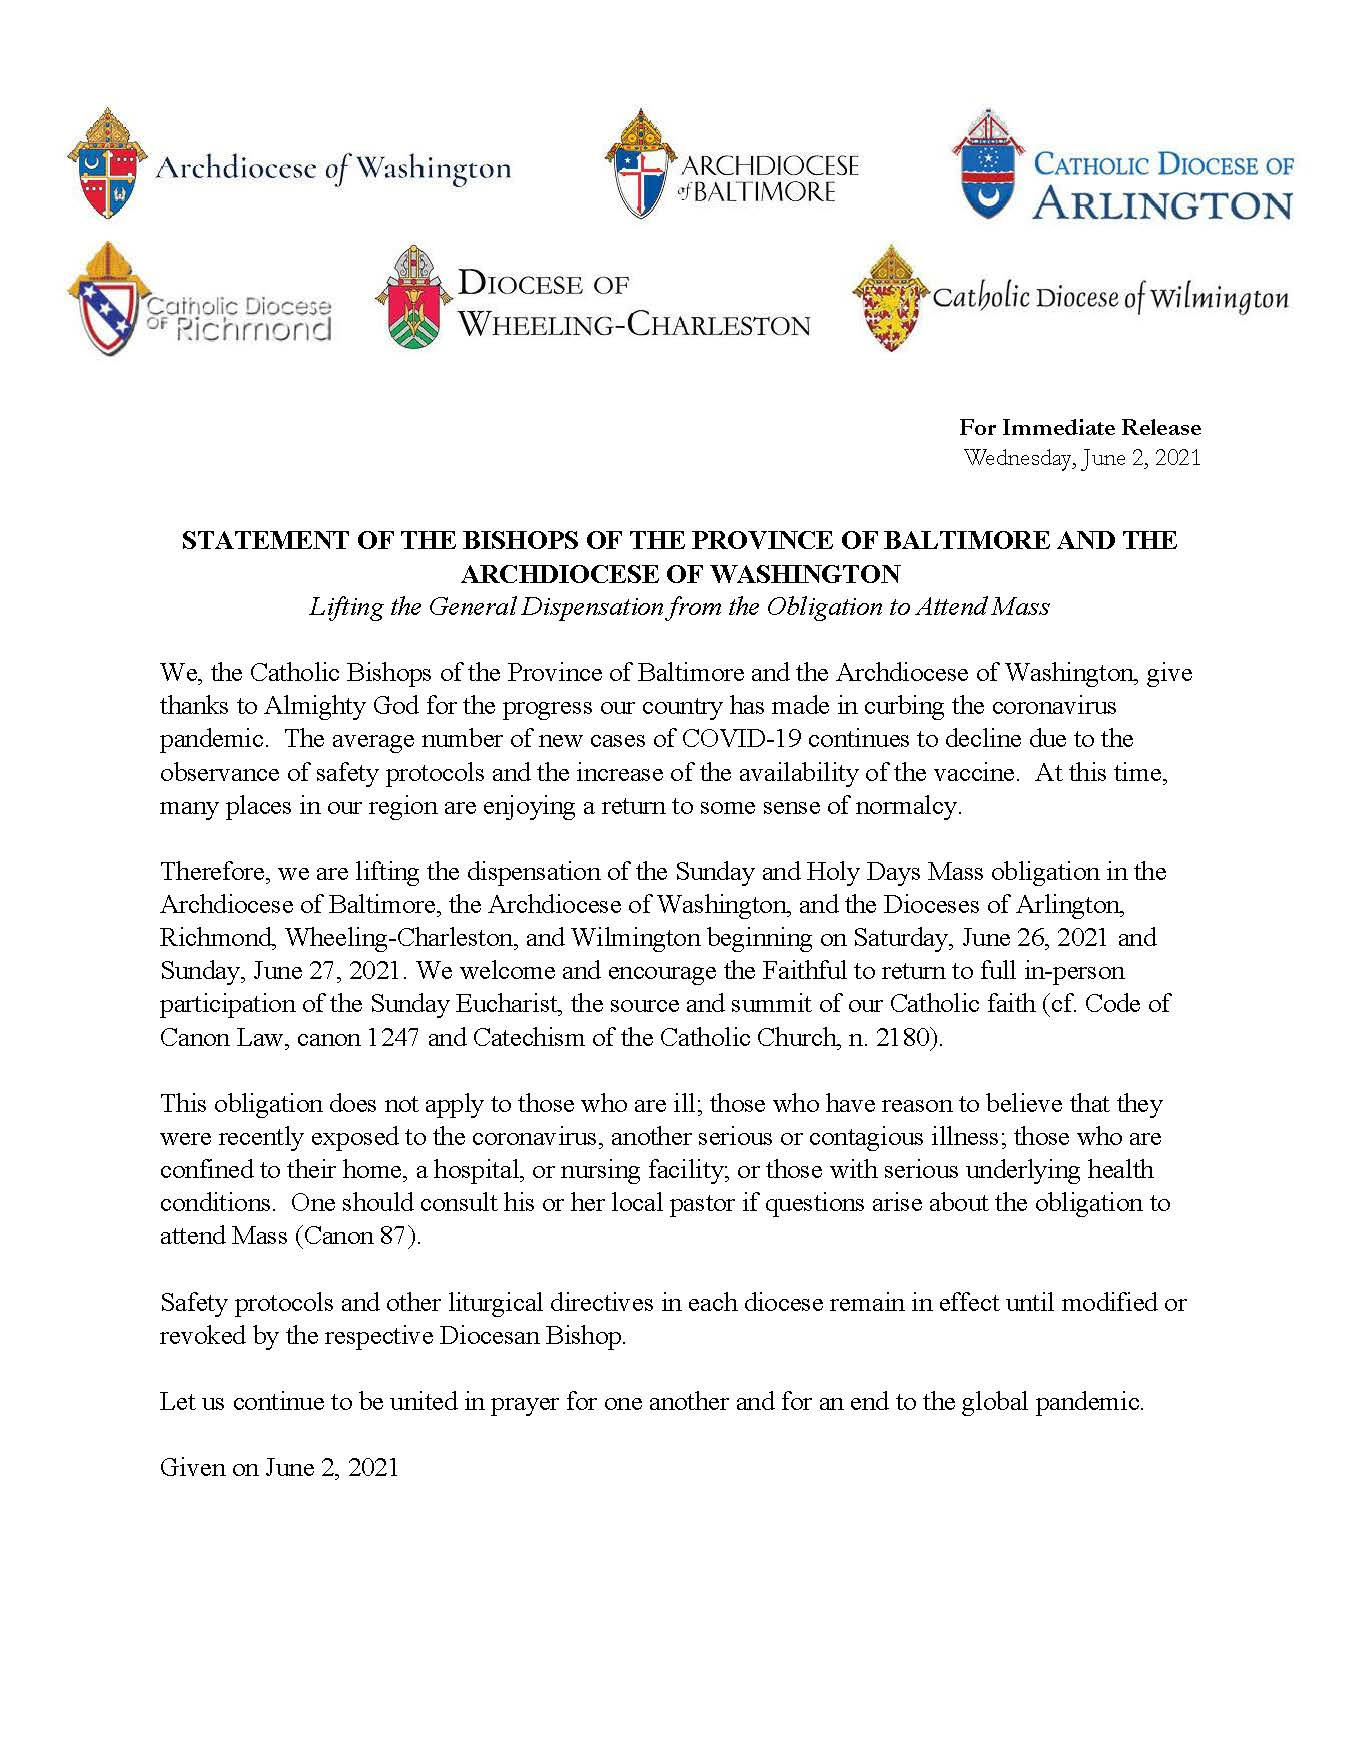 6-2-21 – Statement of the Bishops of the Province of Baltimore and the Archdiocese of Washington